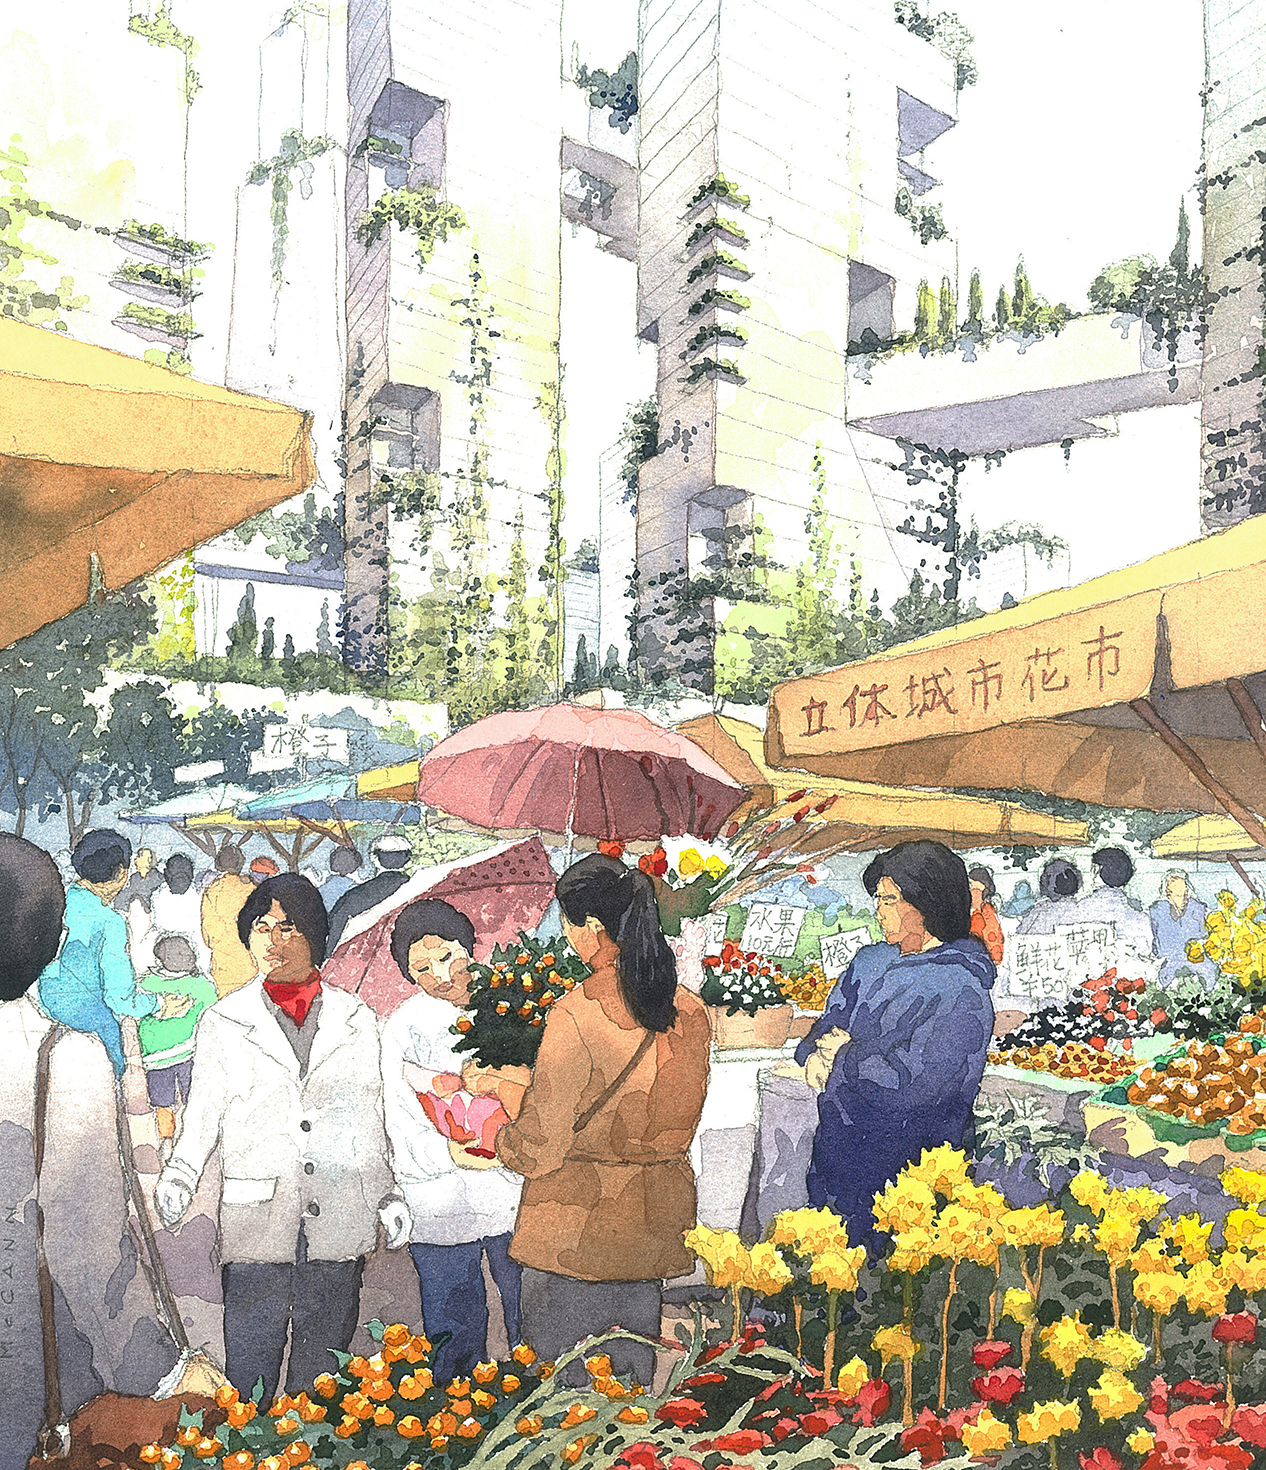 Tianfu Ecological City streetscape sketch 2